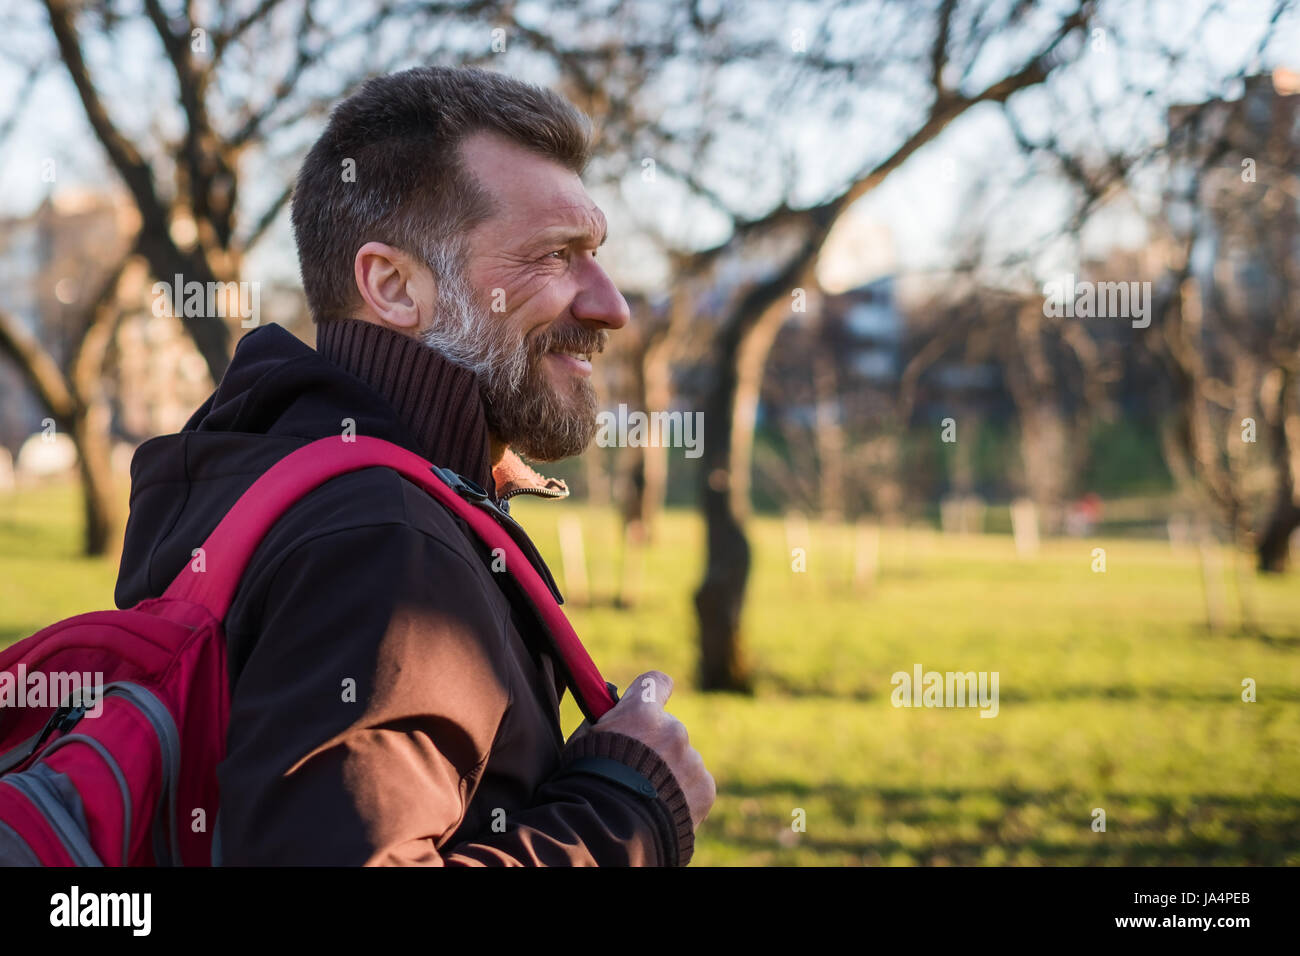 Mature man is walking in a park with a backpack on a sunny day and smiling. - Stock Image